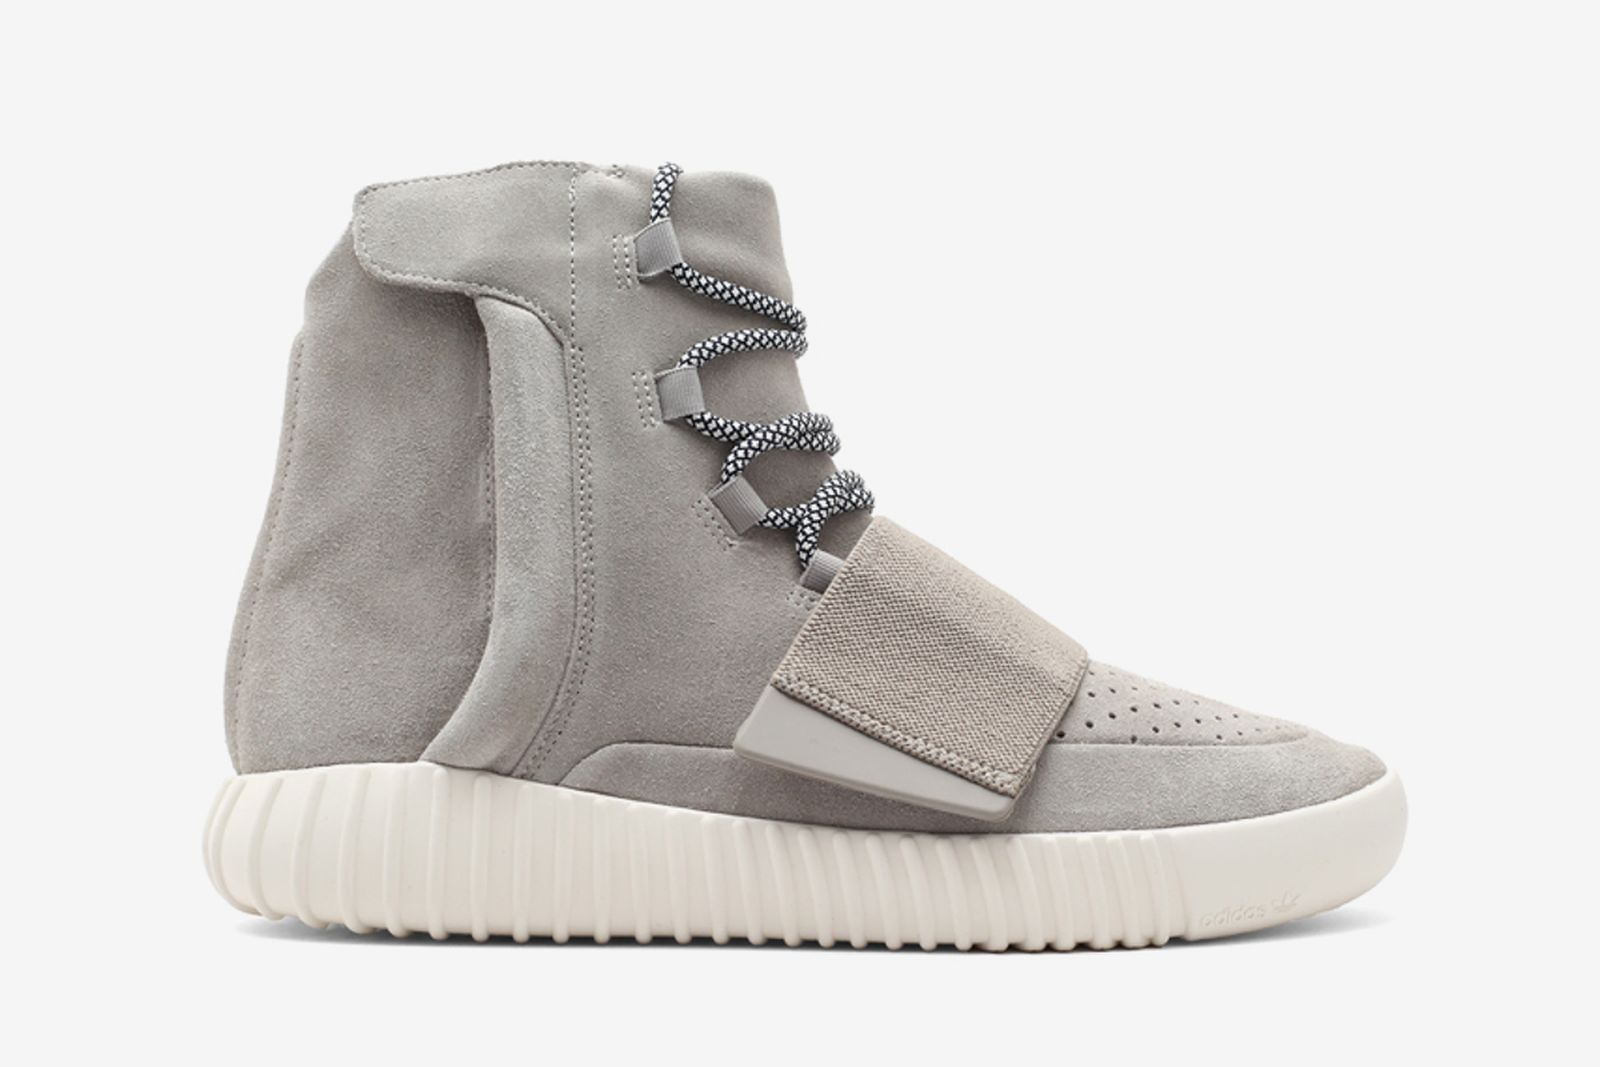 adidas yeezy guide 40 FlightClub adidas yeezy 750 boost lbrown cwhite lbrown 201060 1 Grailed StockX adidas Originals